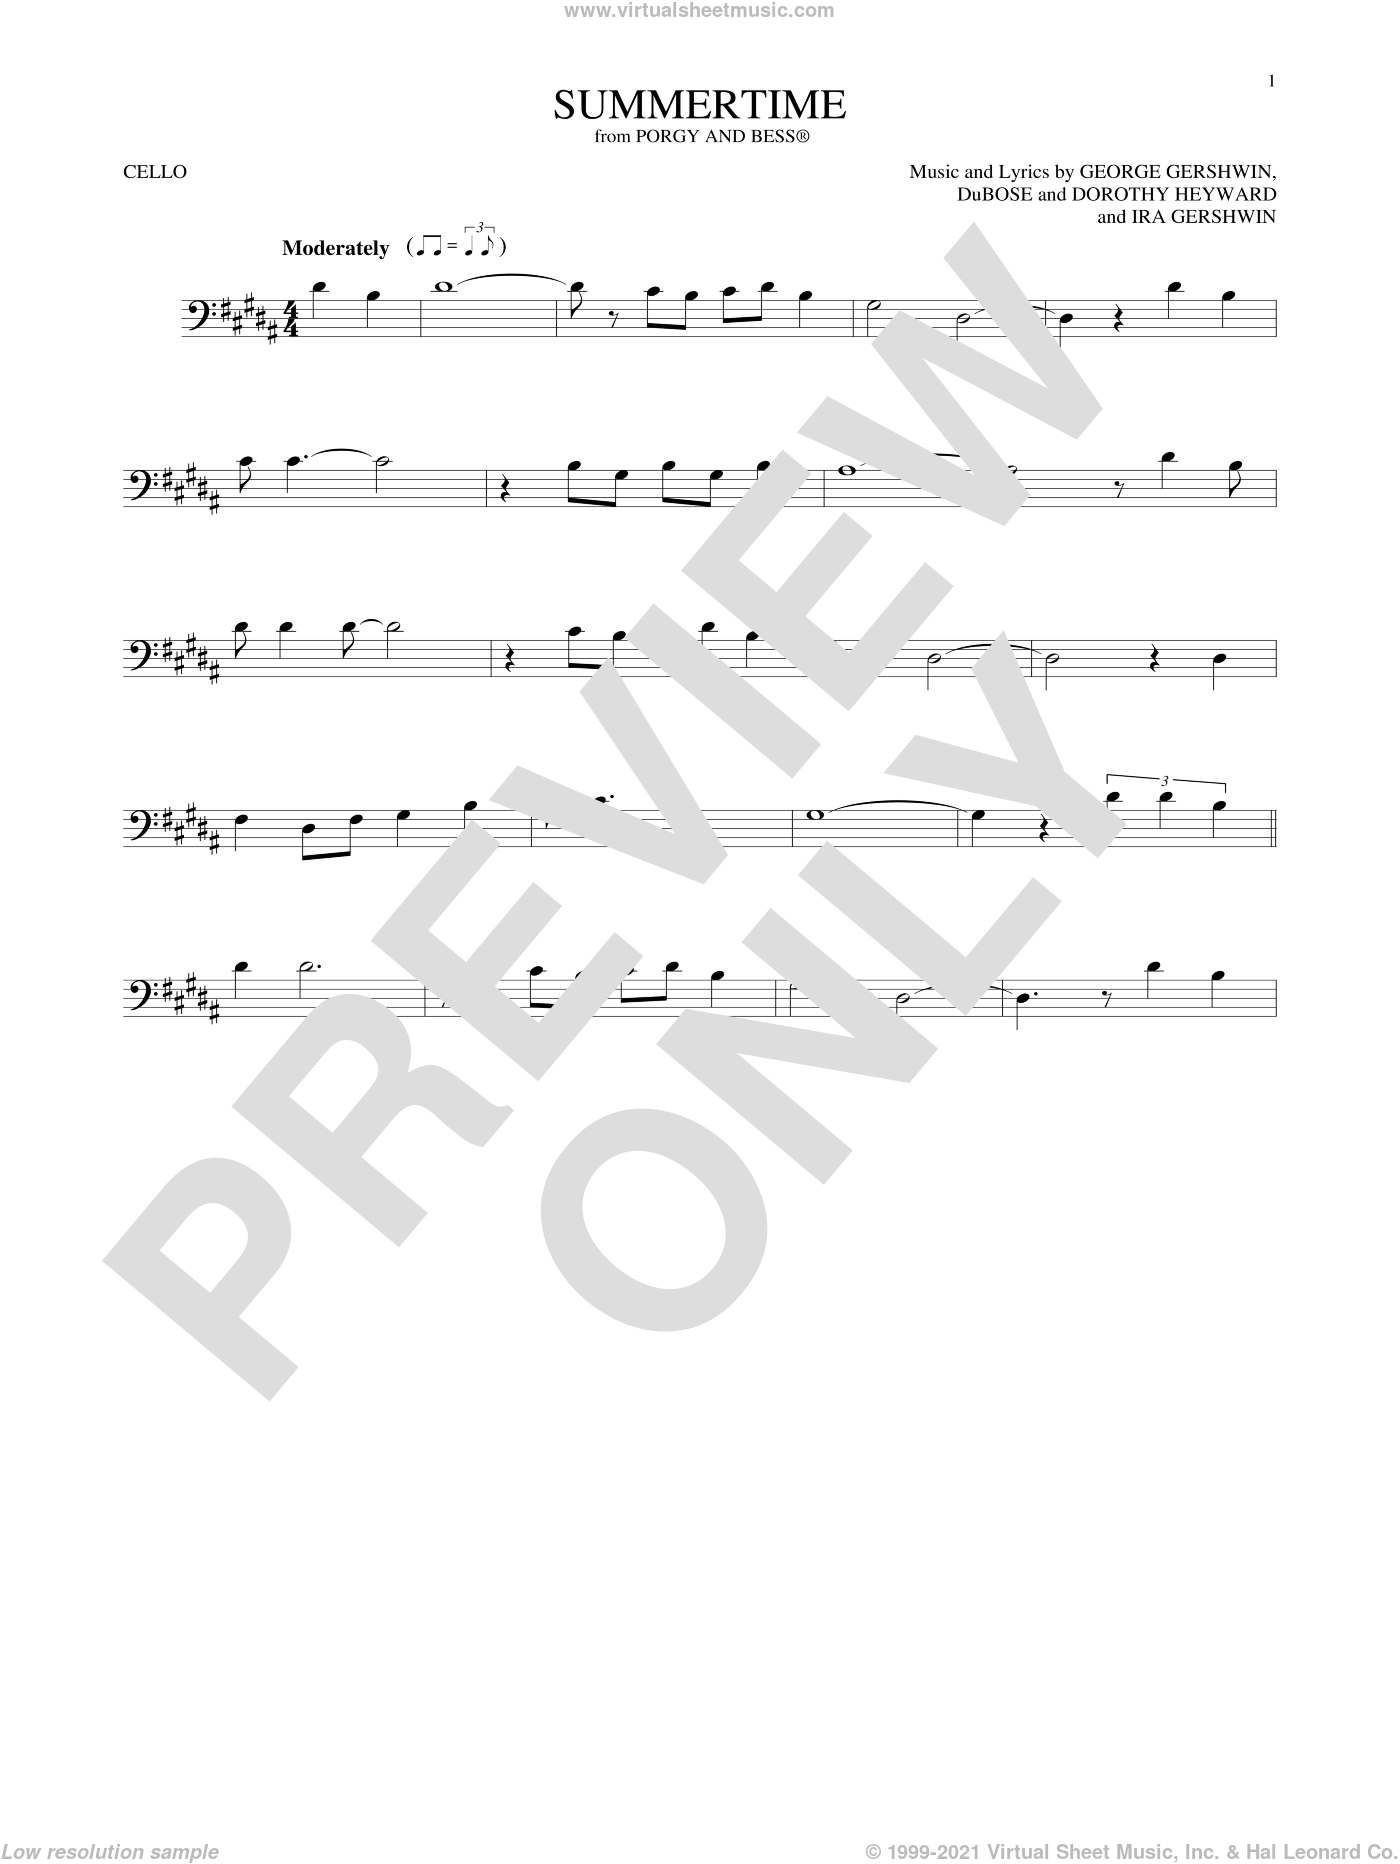 Summertime sheet music for cello solo by George Gershwin, Dorothy Heyward, DuBose Heyward and Ira Gershwin, intermediate skill level